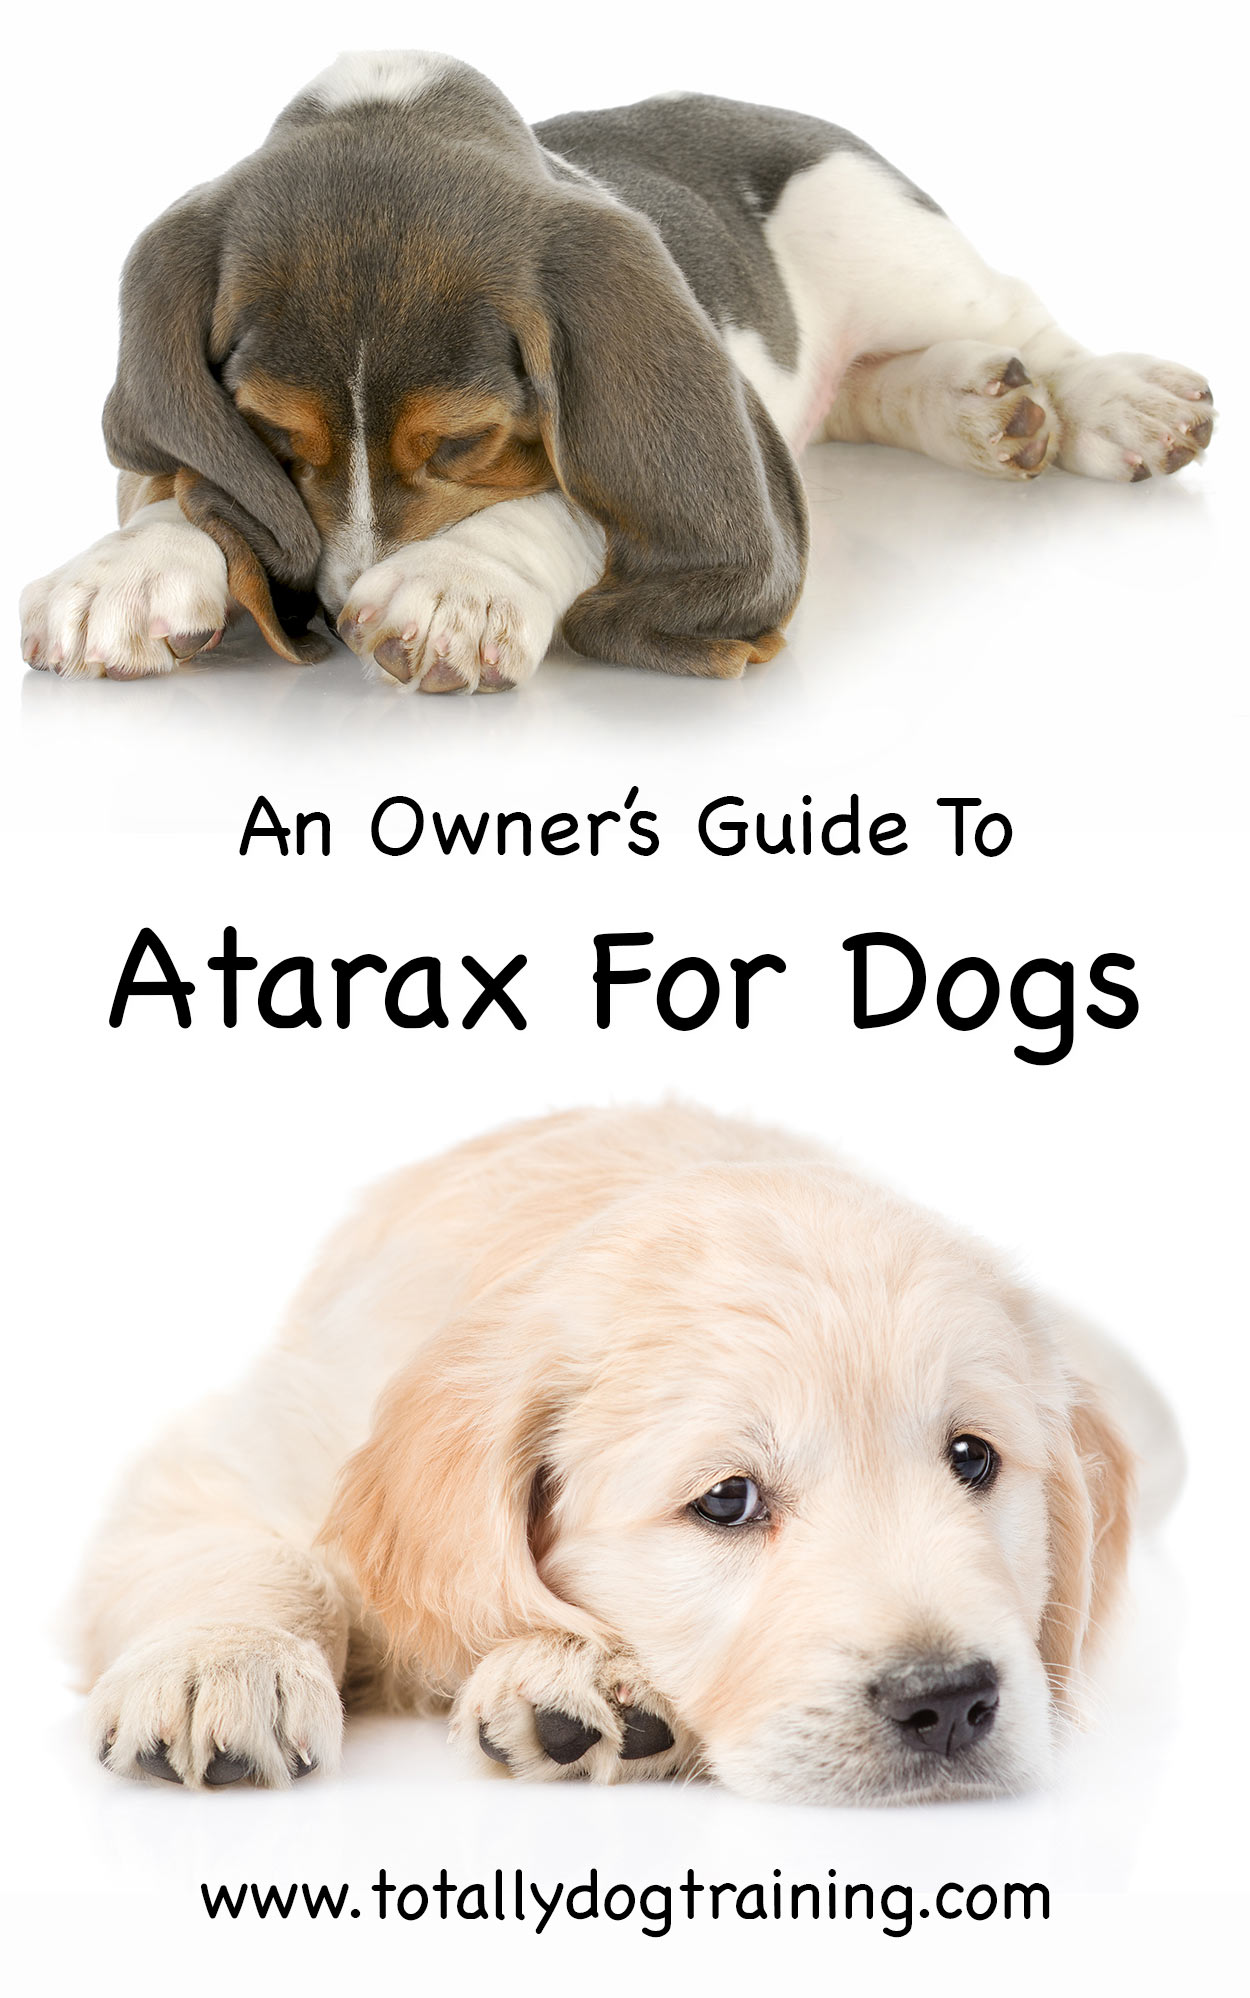 atarax for dogs